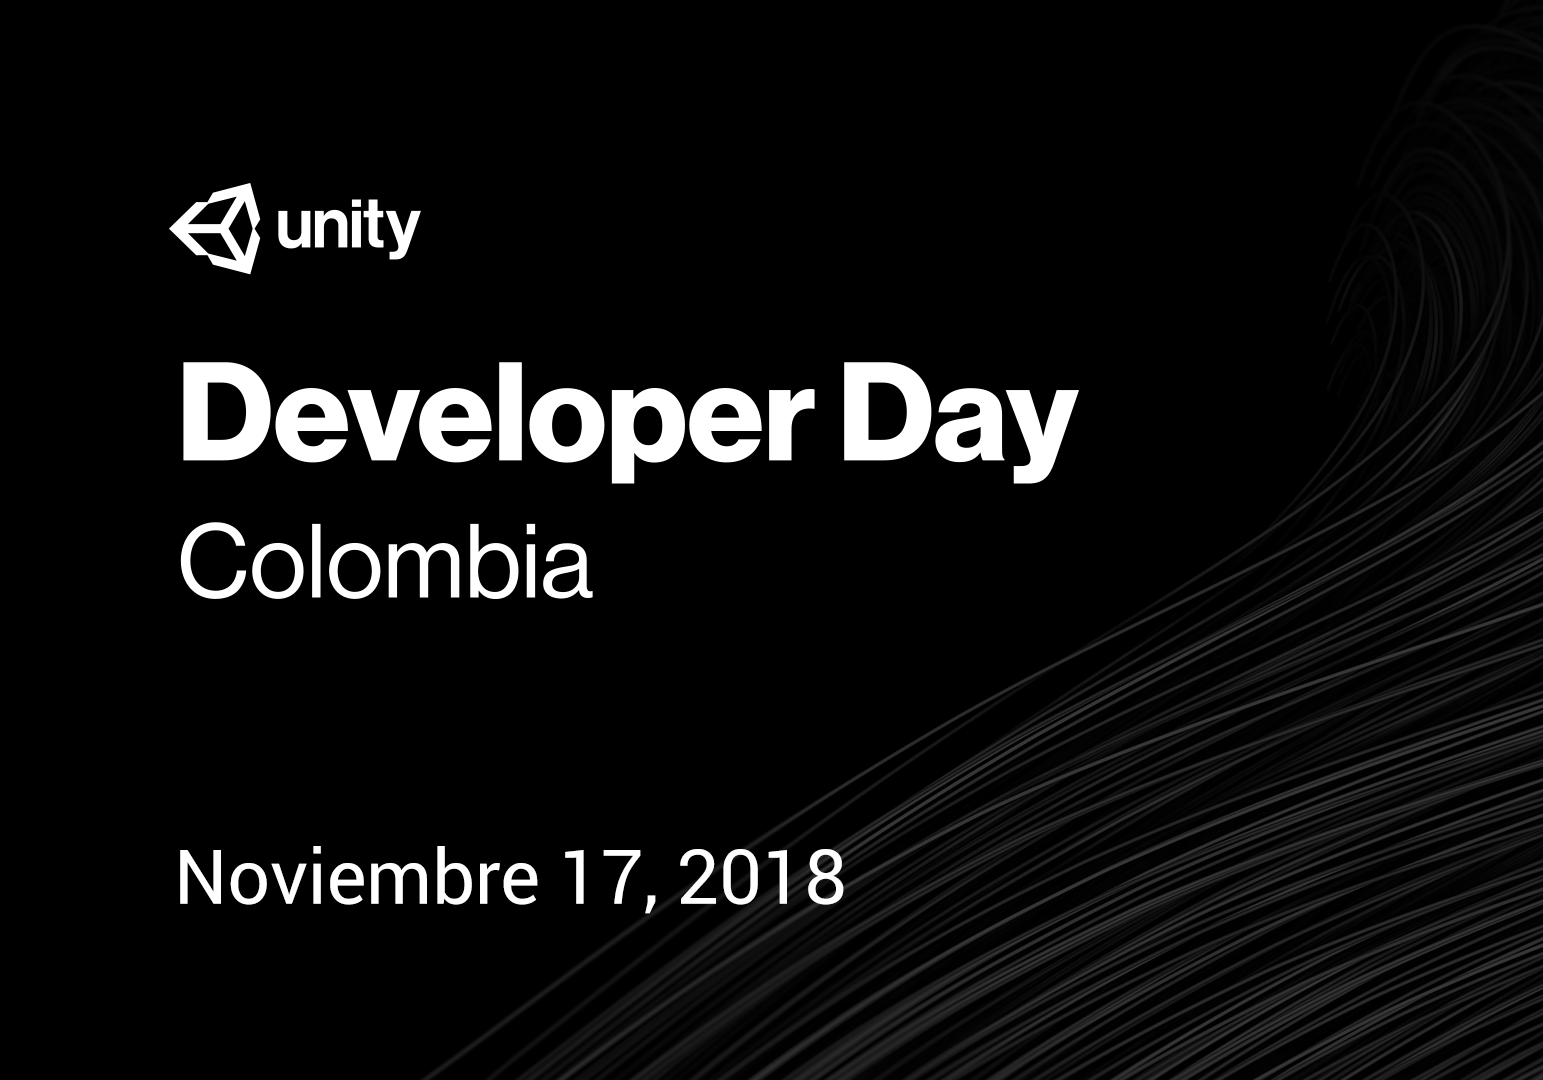 Unity Developer Day: Colombia 2018